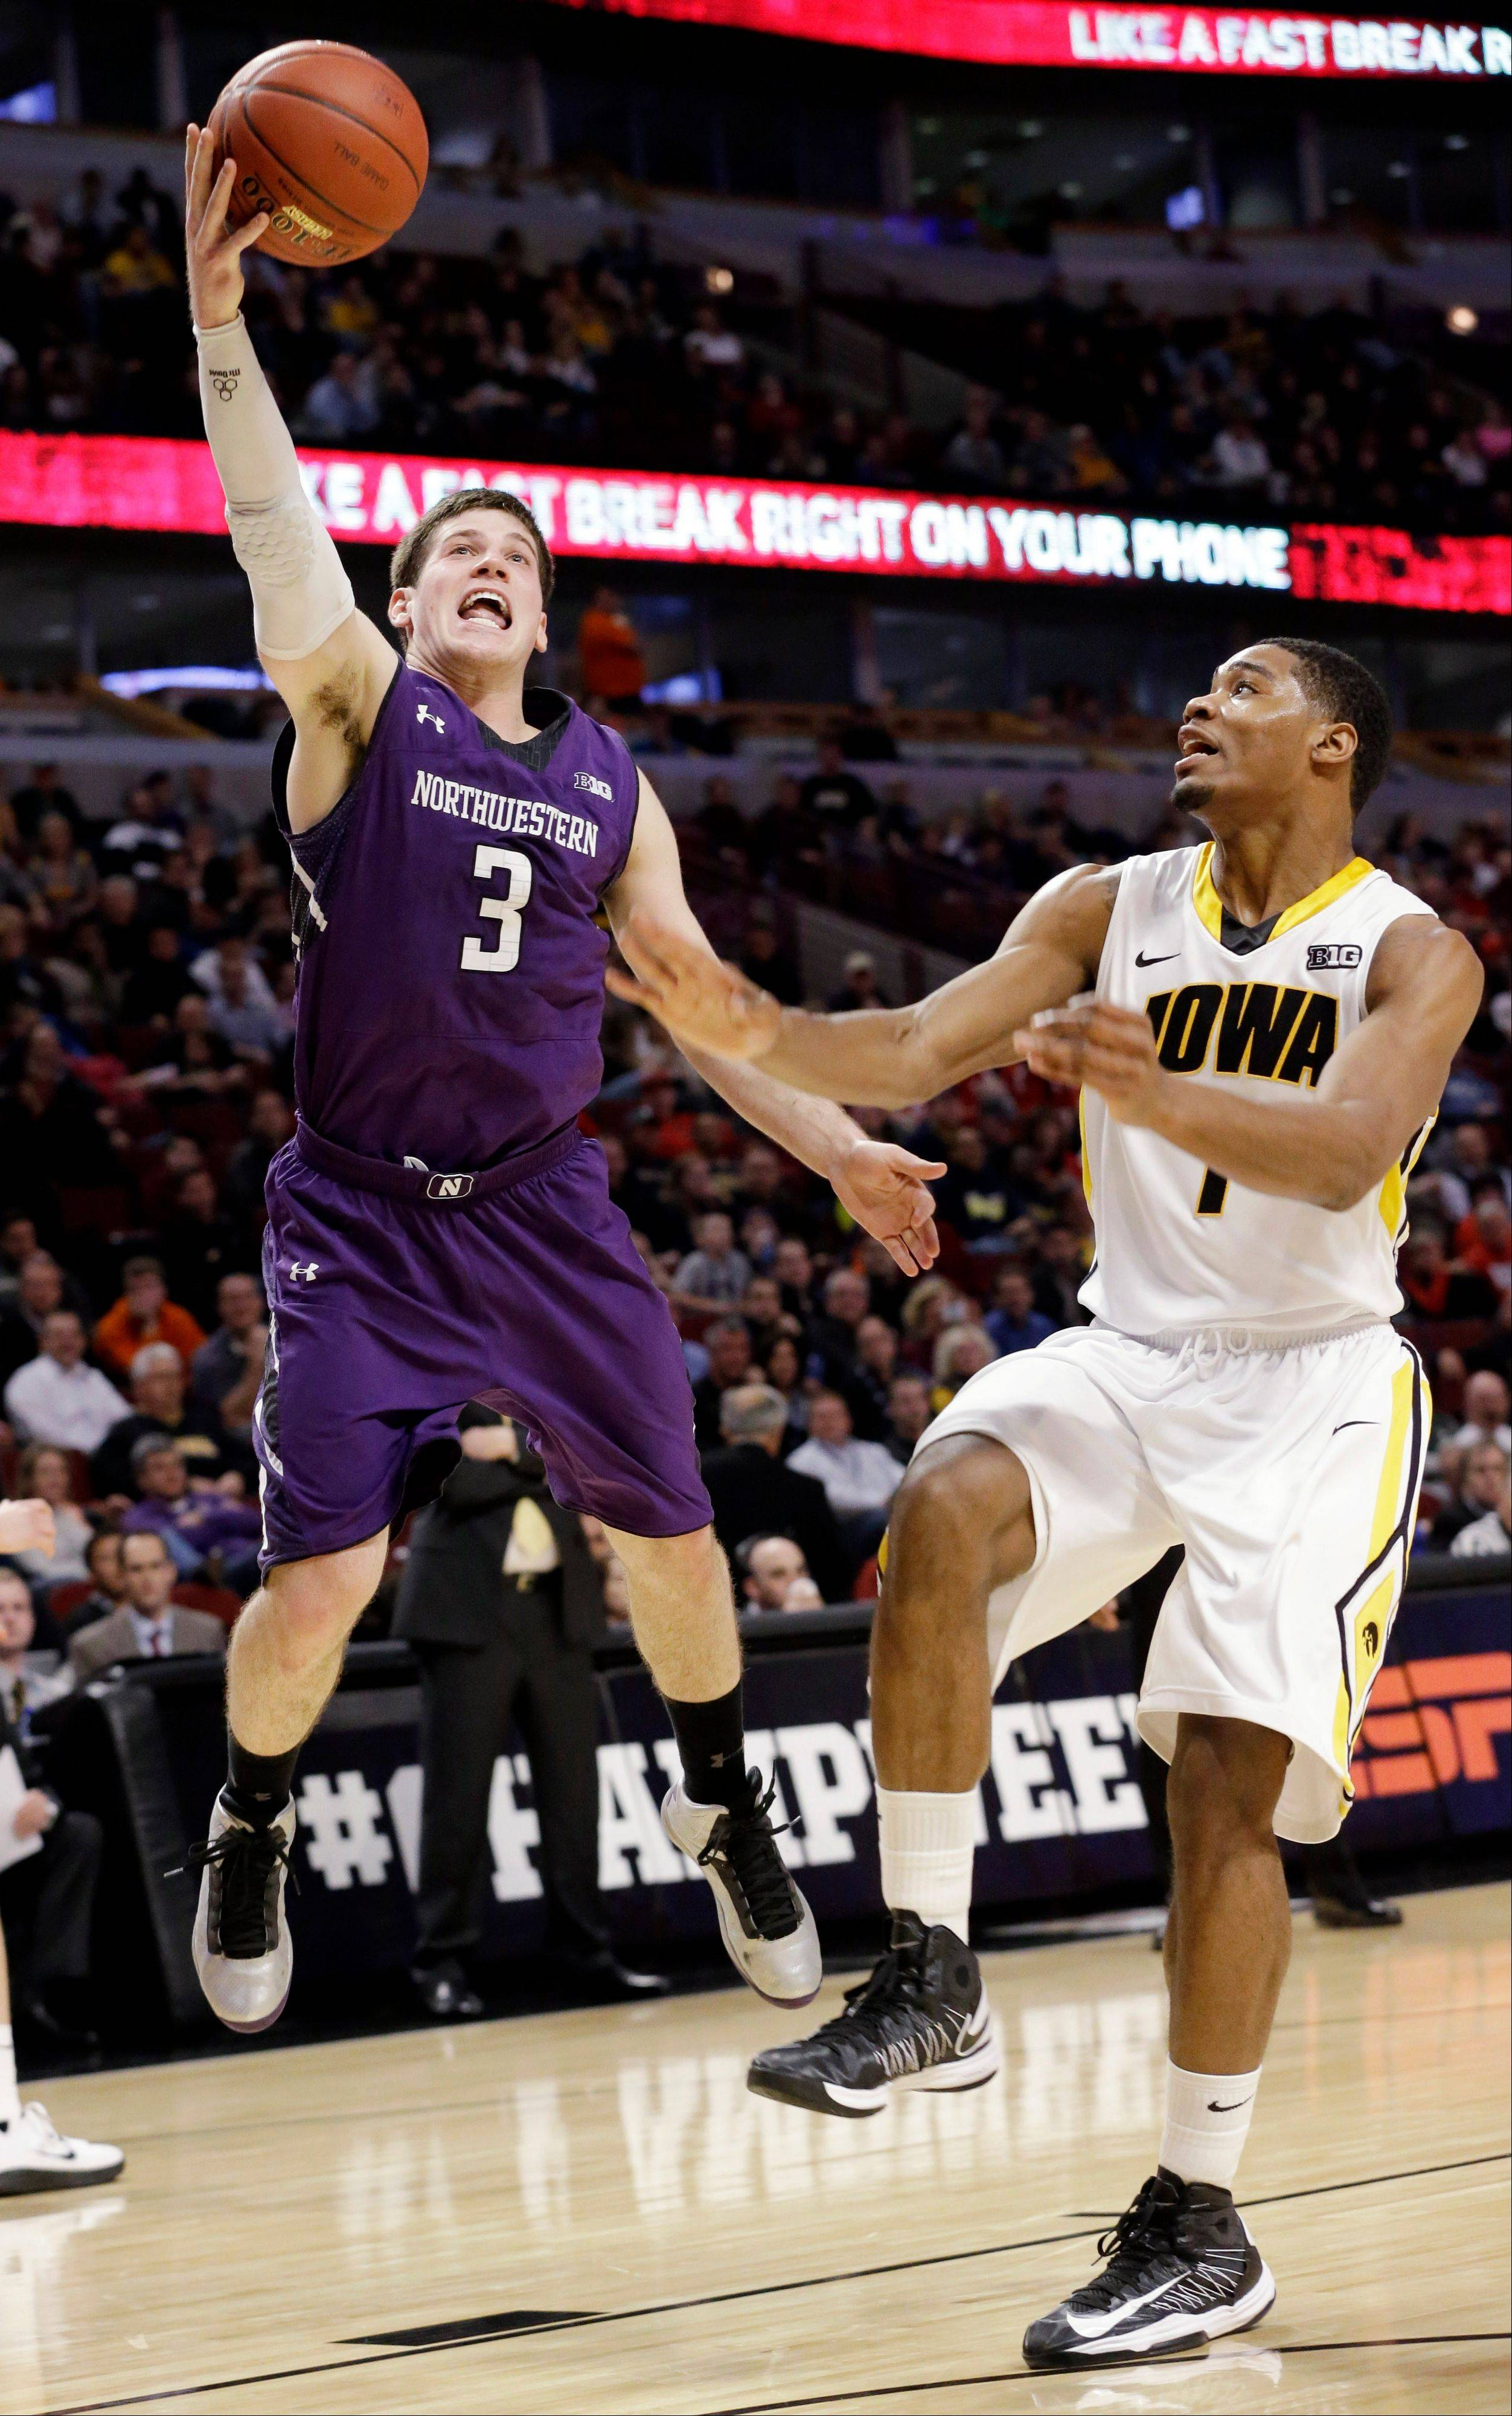 Northwestern's Dave Sobolewski shoots past Iowa's Melsahn Basabe during the first half.